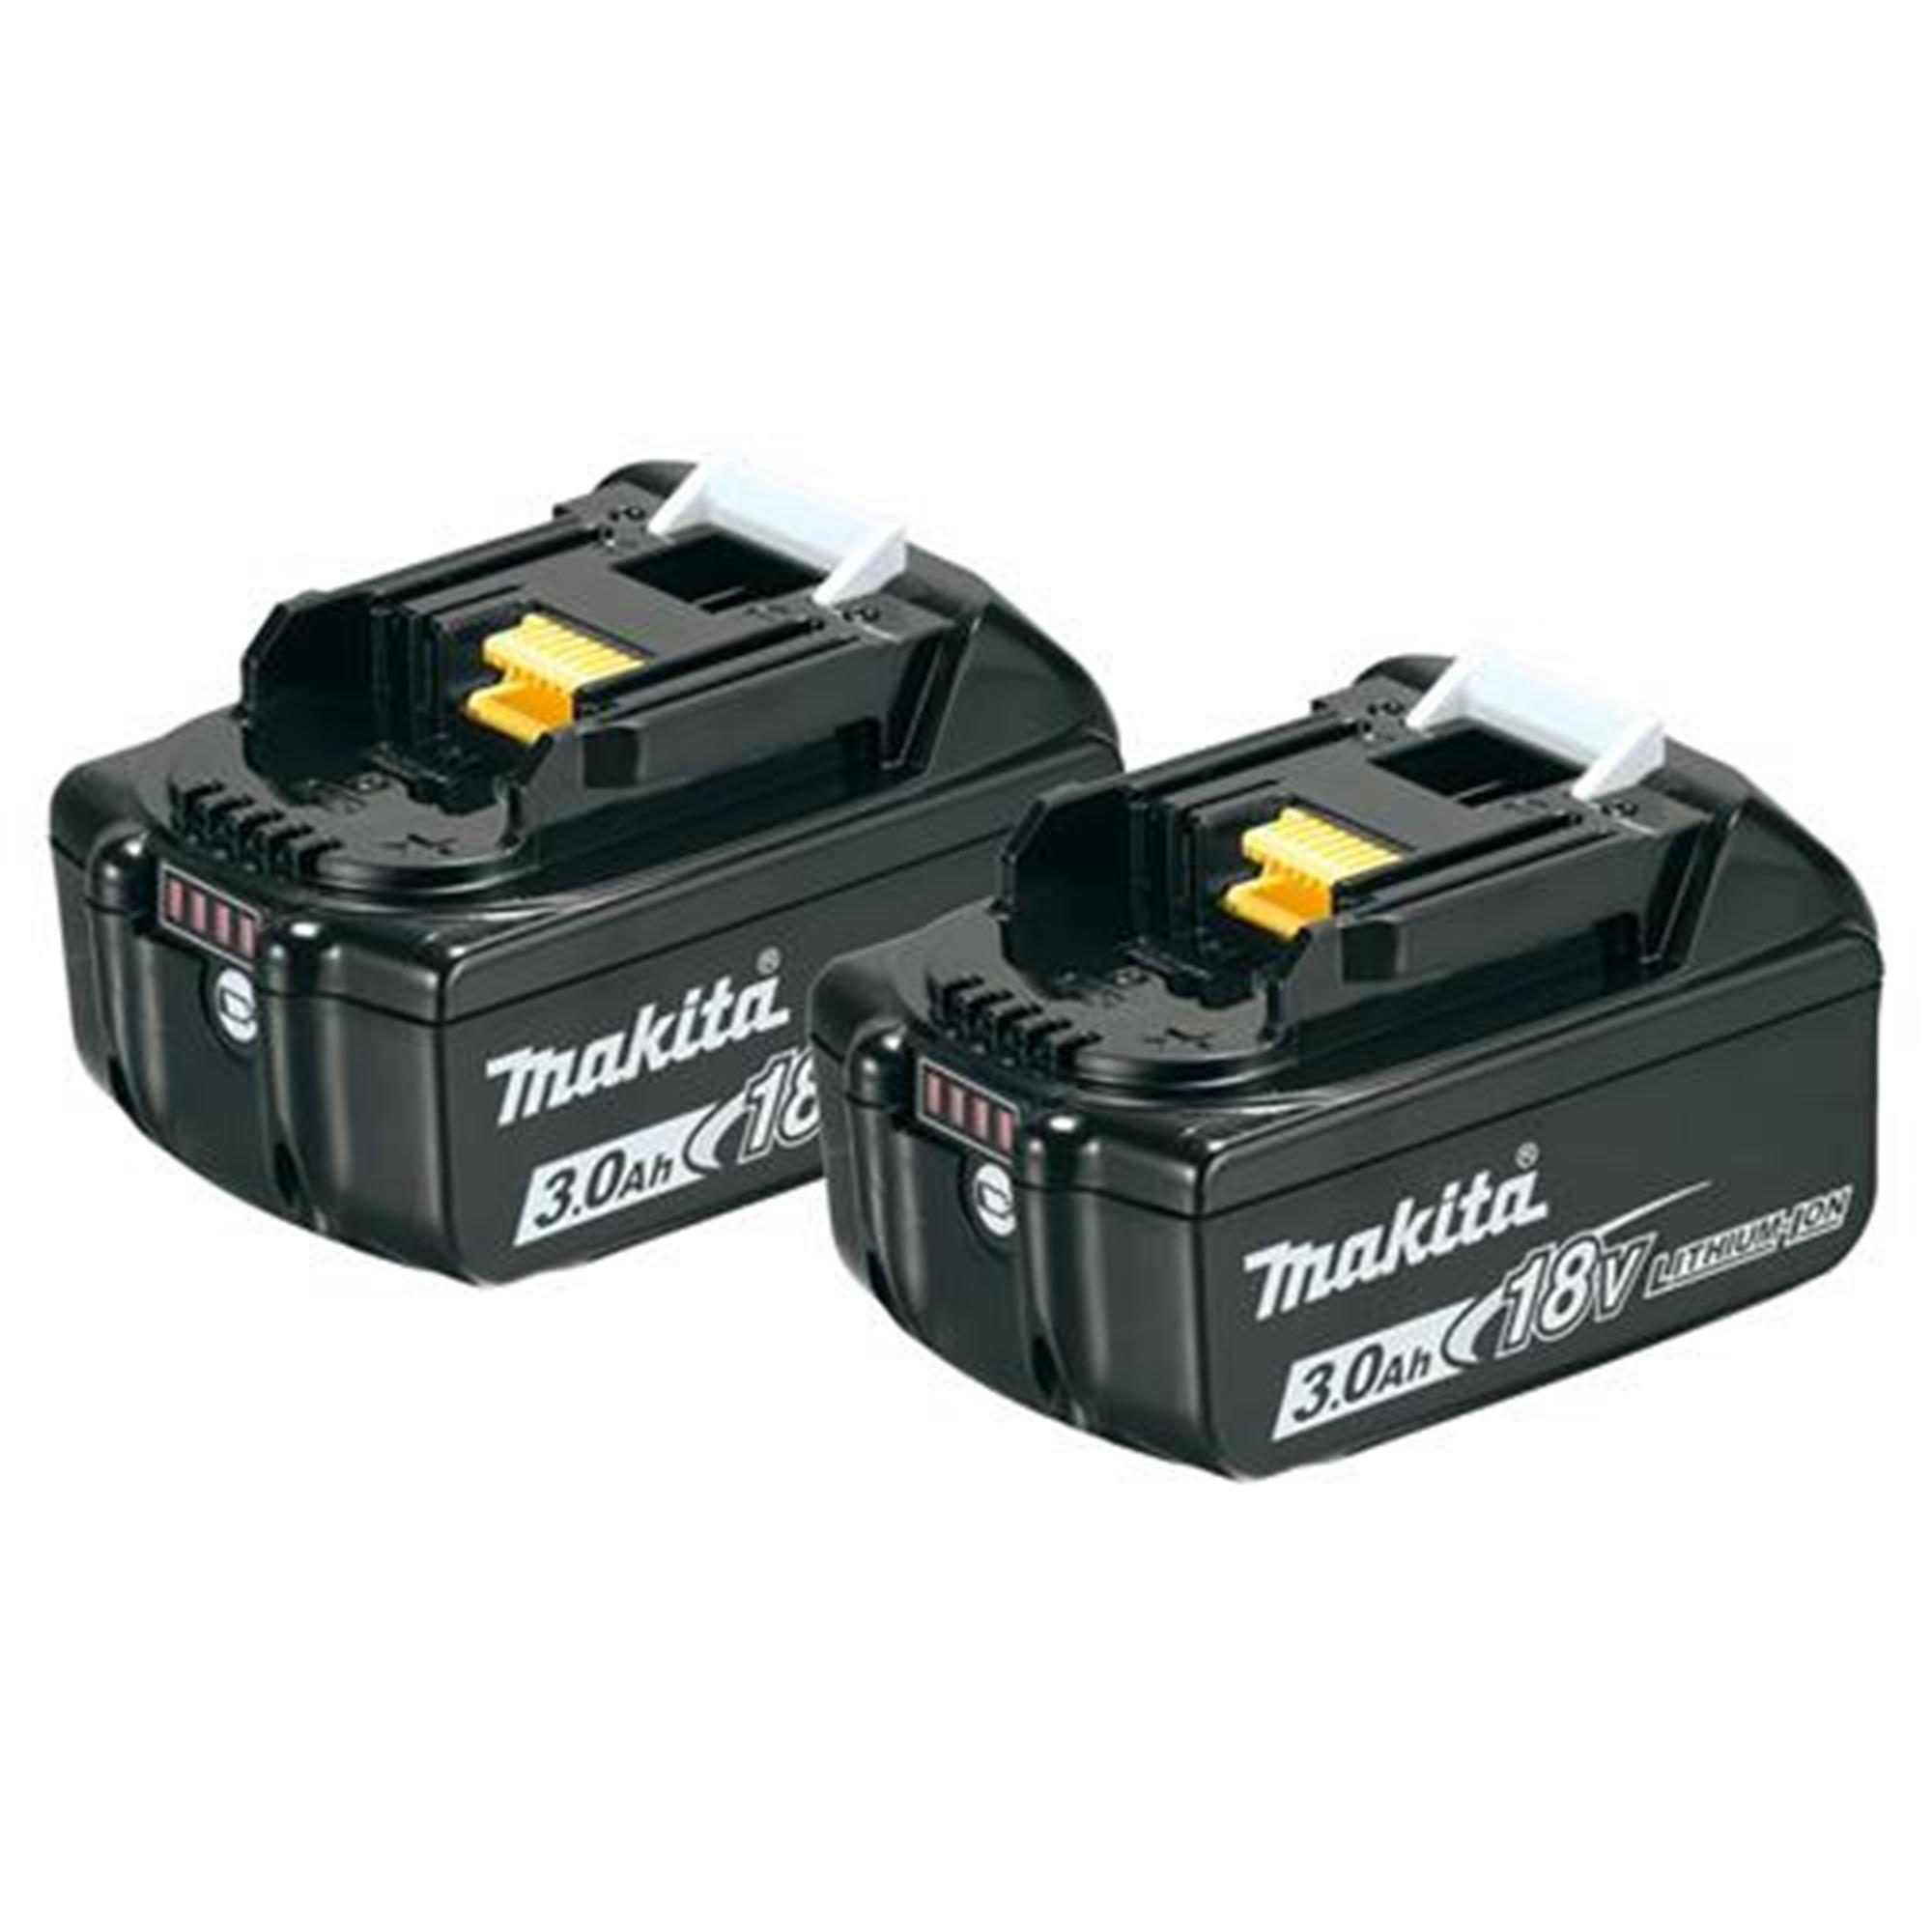 Makita DHP482RJ 18v Li-ion LXT Combi Drill with 2 x 3Ah Batteries, Charger and Case_Alt_Image_2